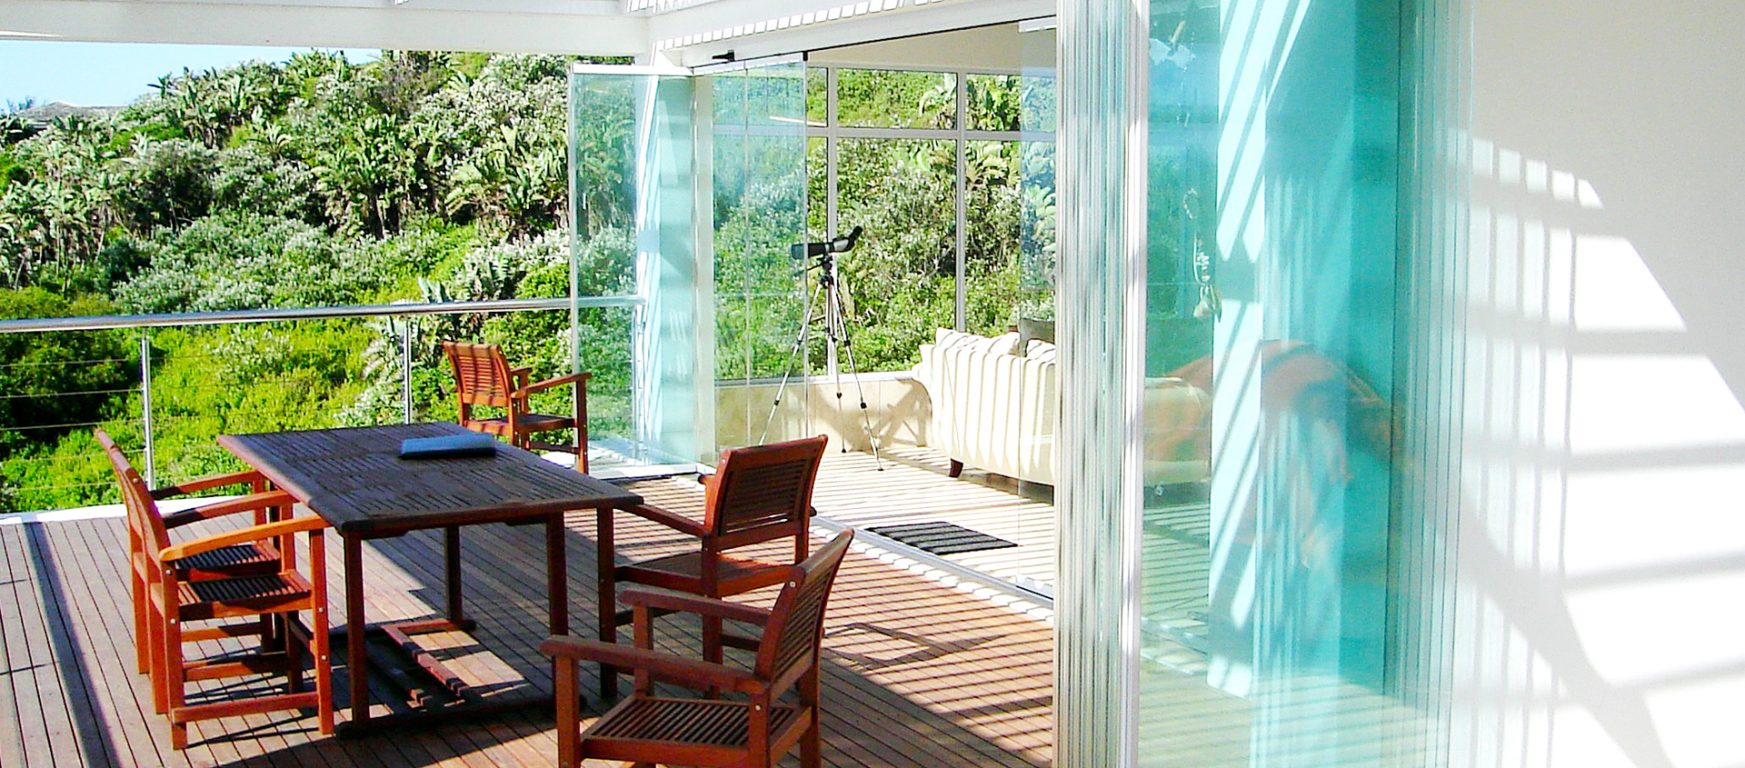 Sunflex SF 25 exterior glass panels